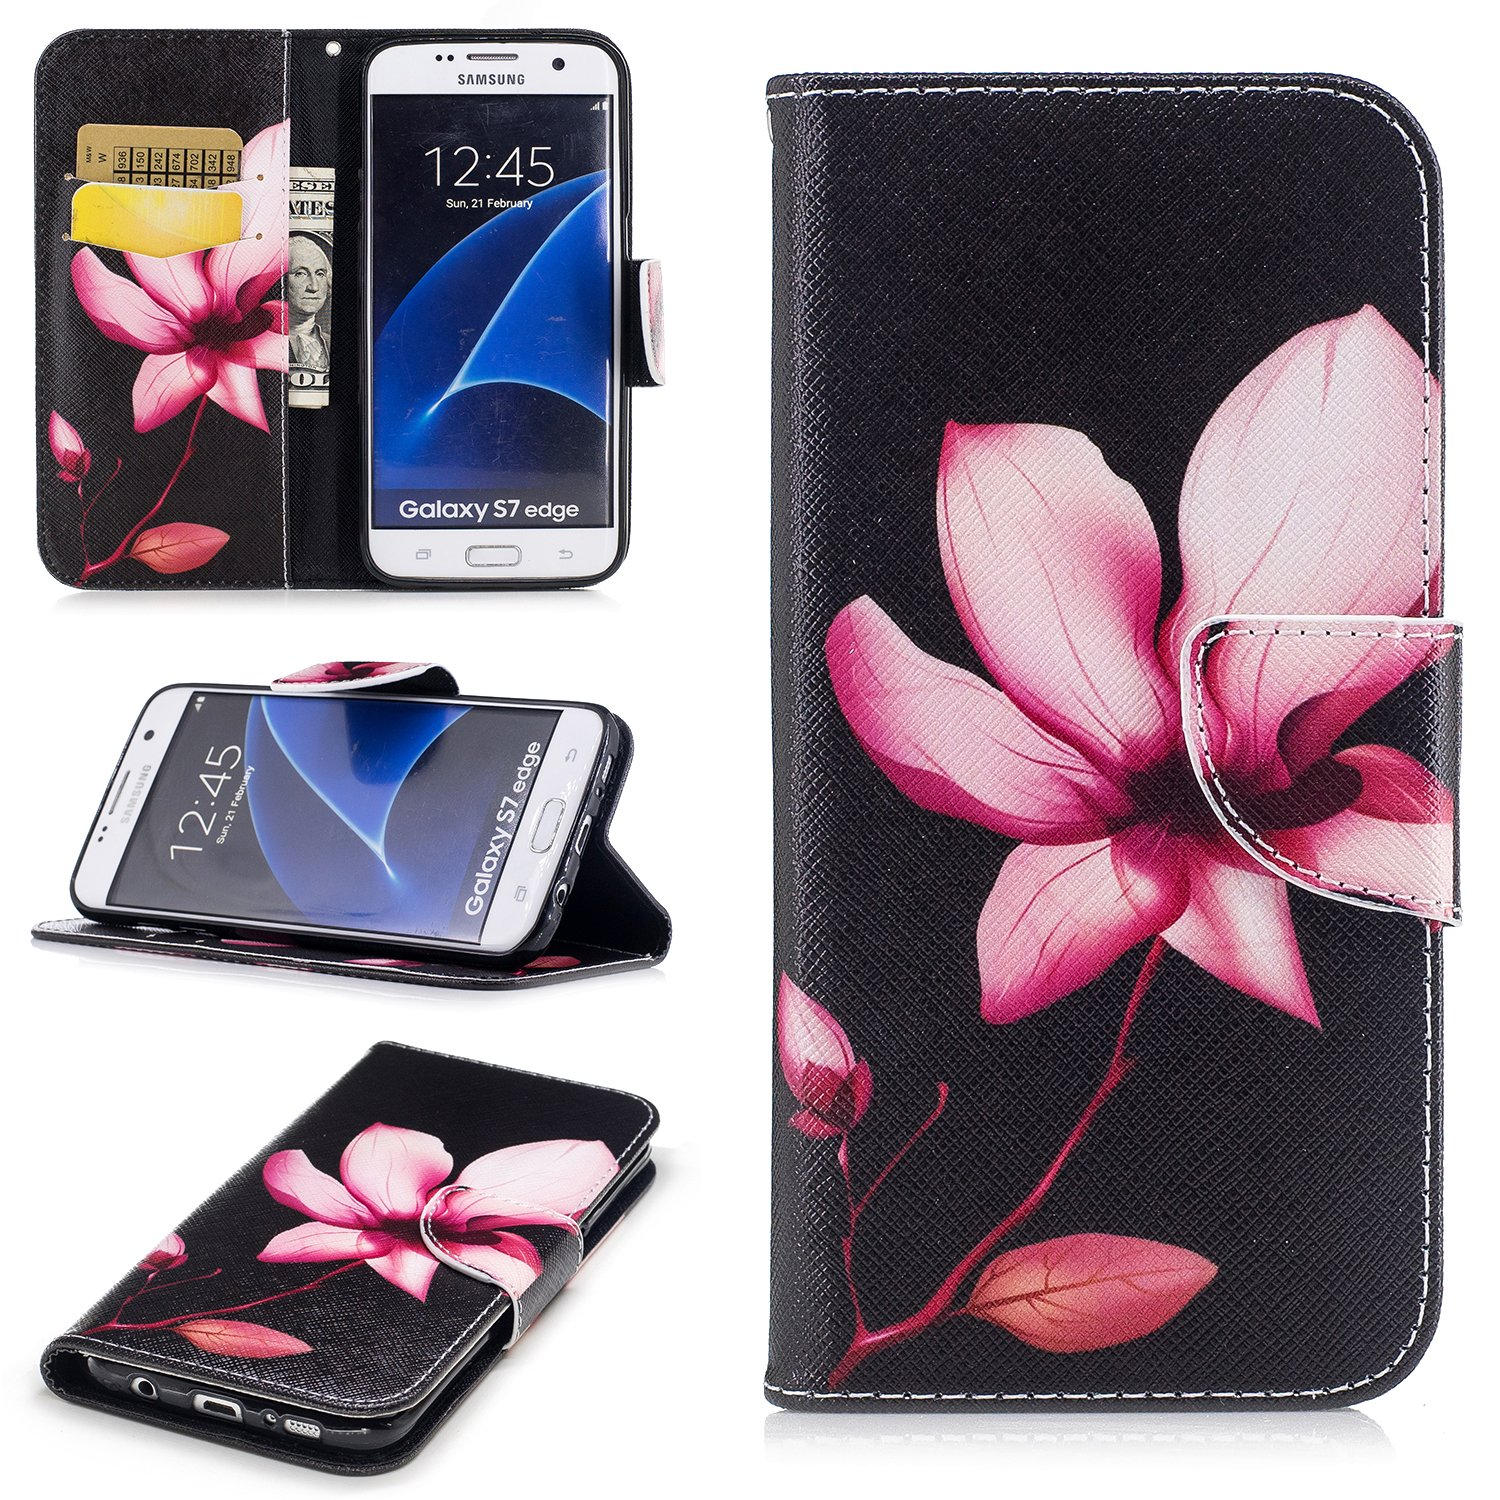 Samsung S7 Edge Galaxy G9350 Case Samsung S7 Edge Amazon Electronics